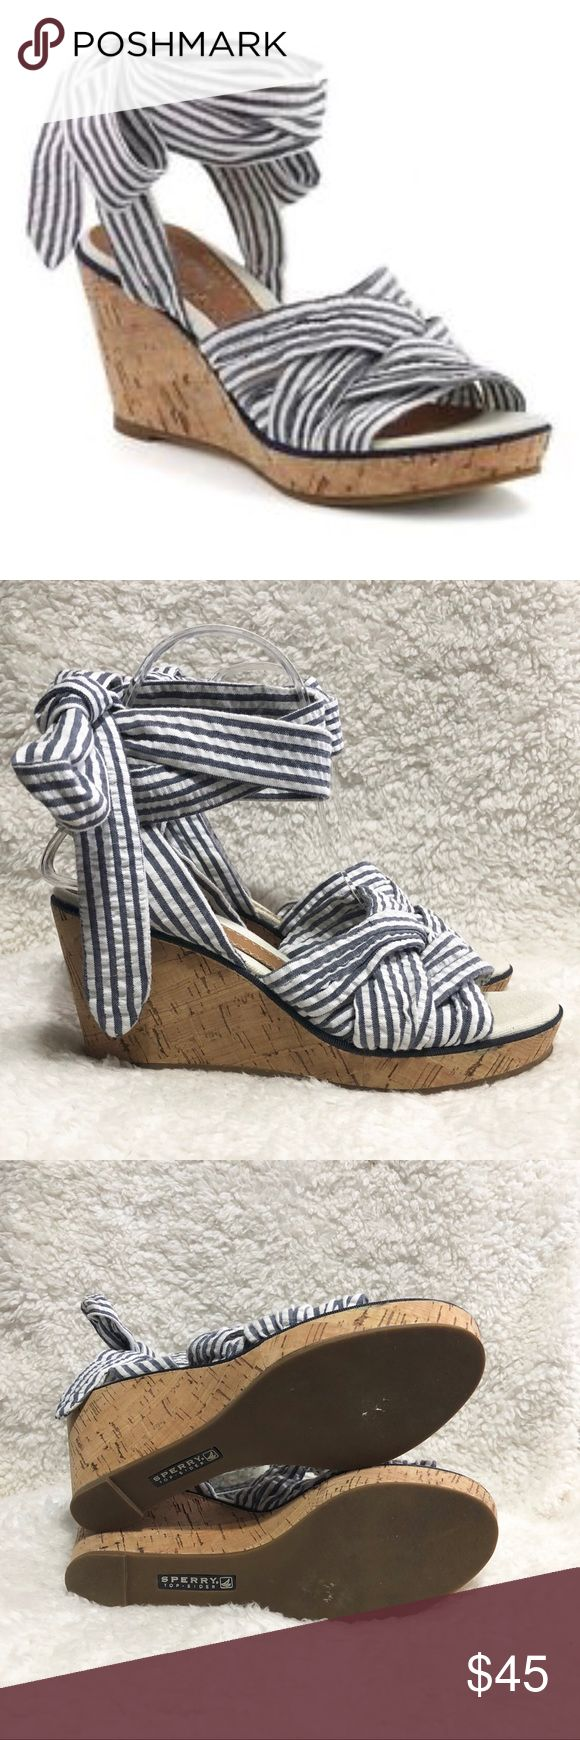 Sperry Top-Sider Lace Up Striped Wedges Very good used condition. Sperry Top-Sider Shoes Wedges